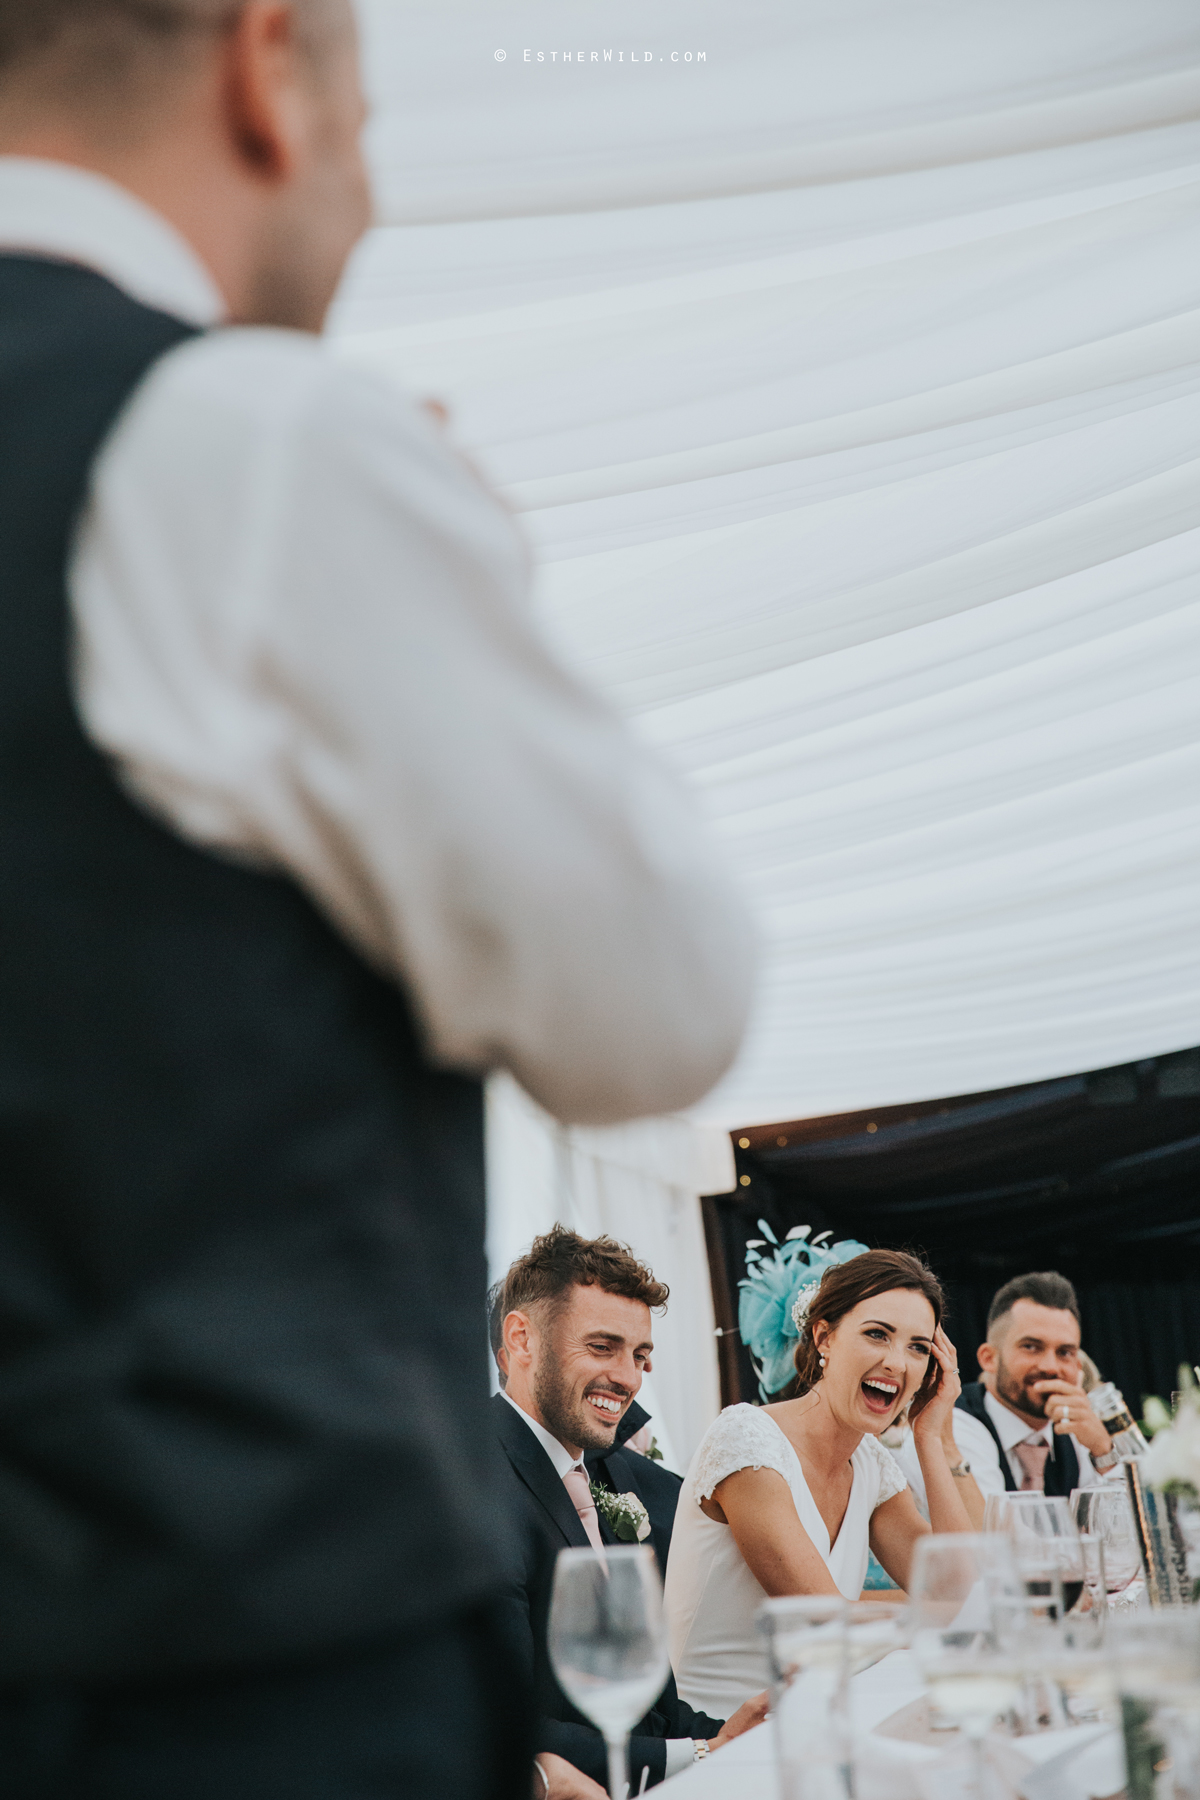 Wootton_Wedding_Copyright_Esther_Wild_Photographer_IMG_2911.jpg